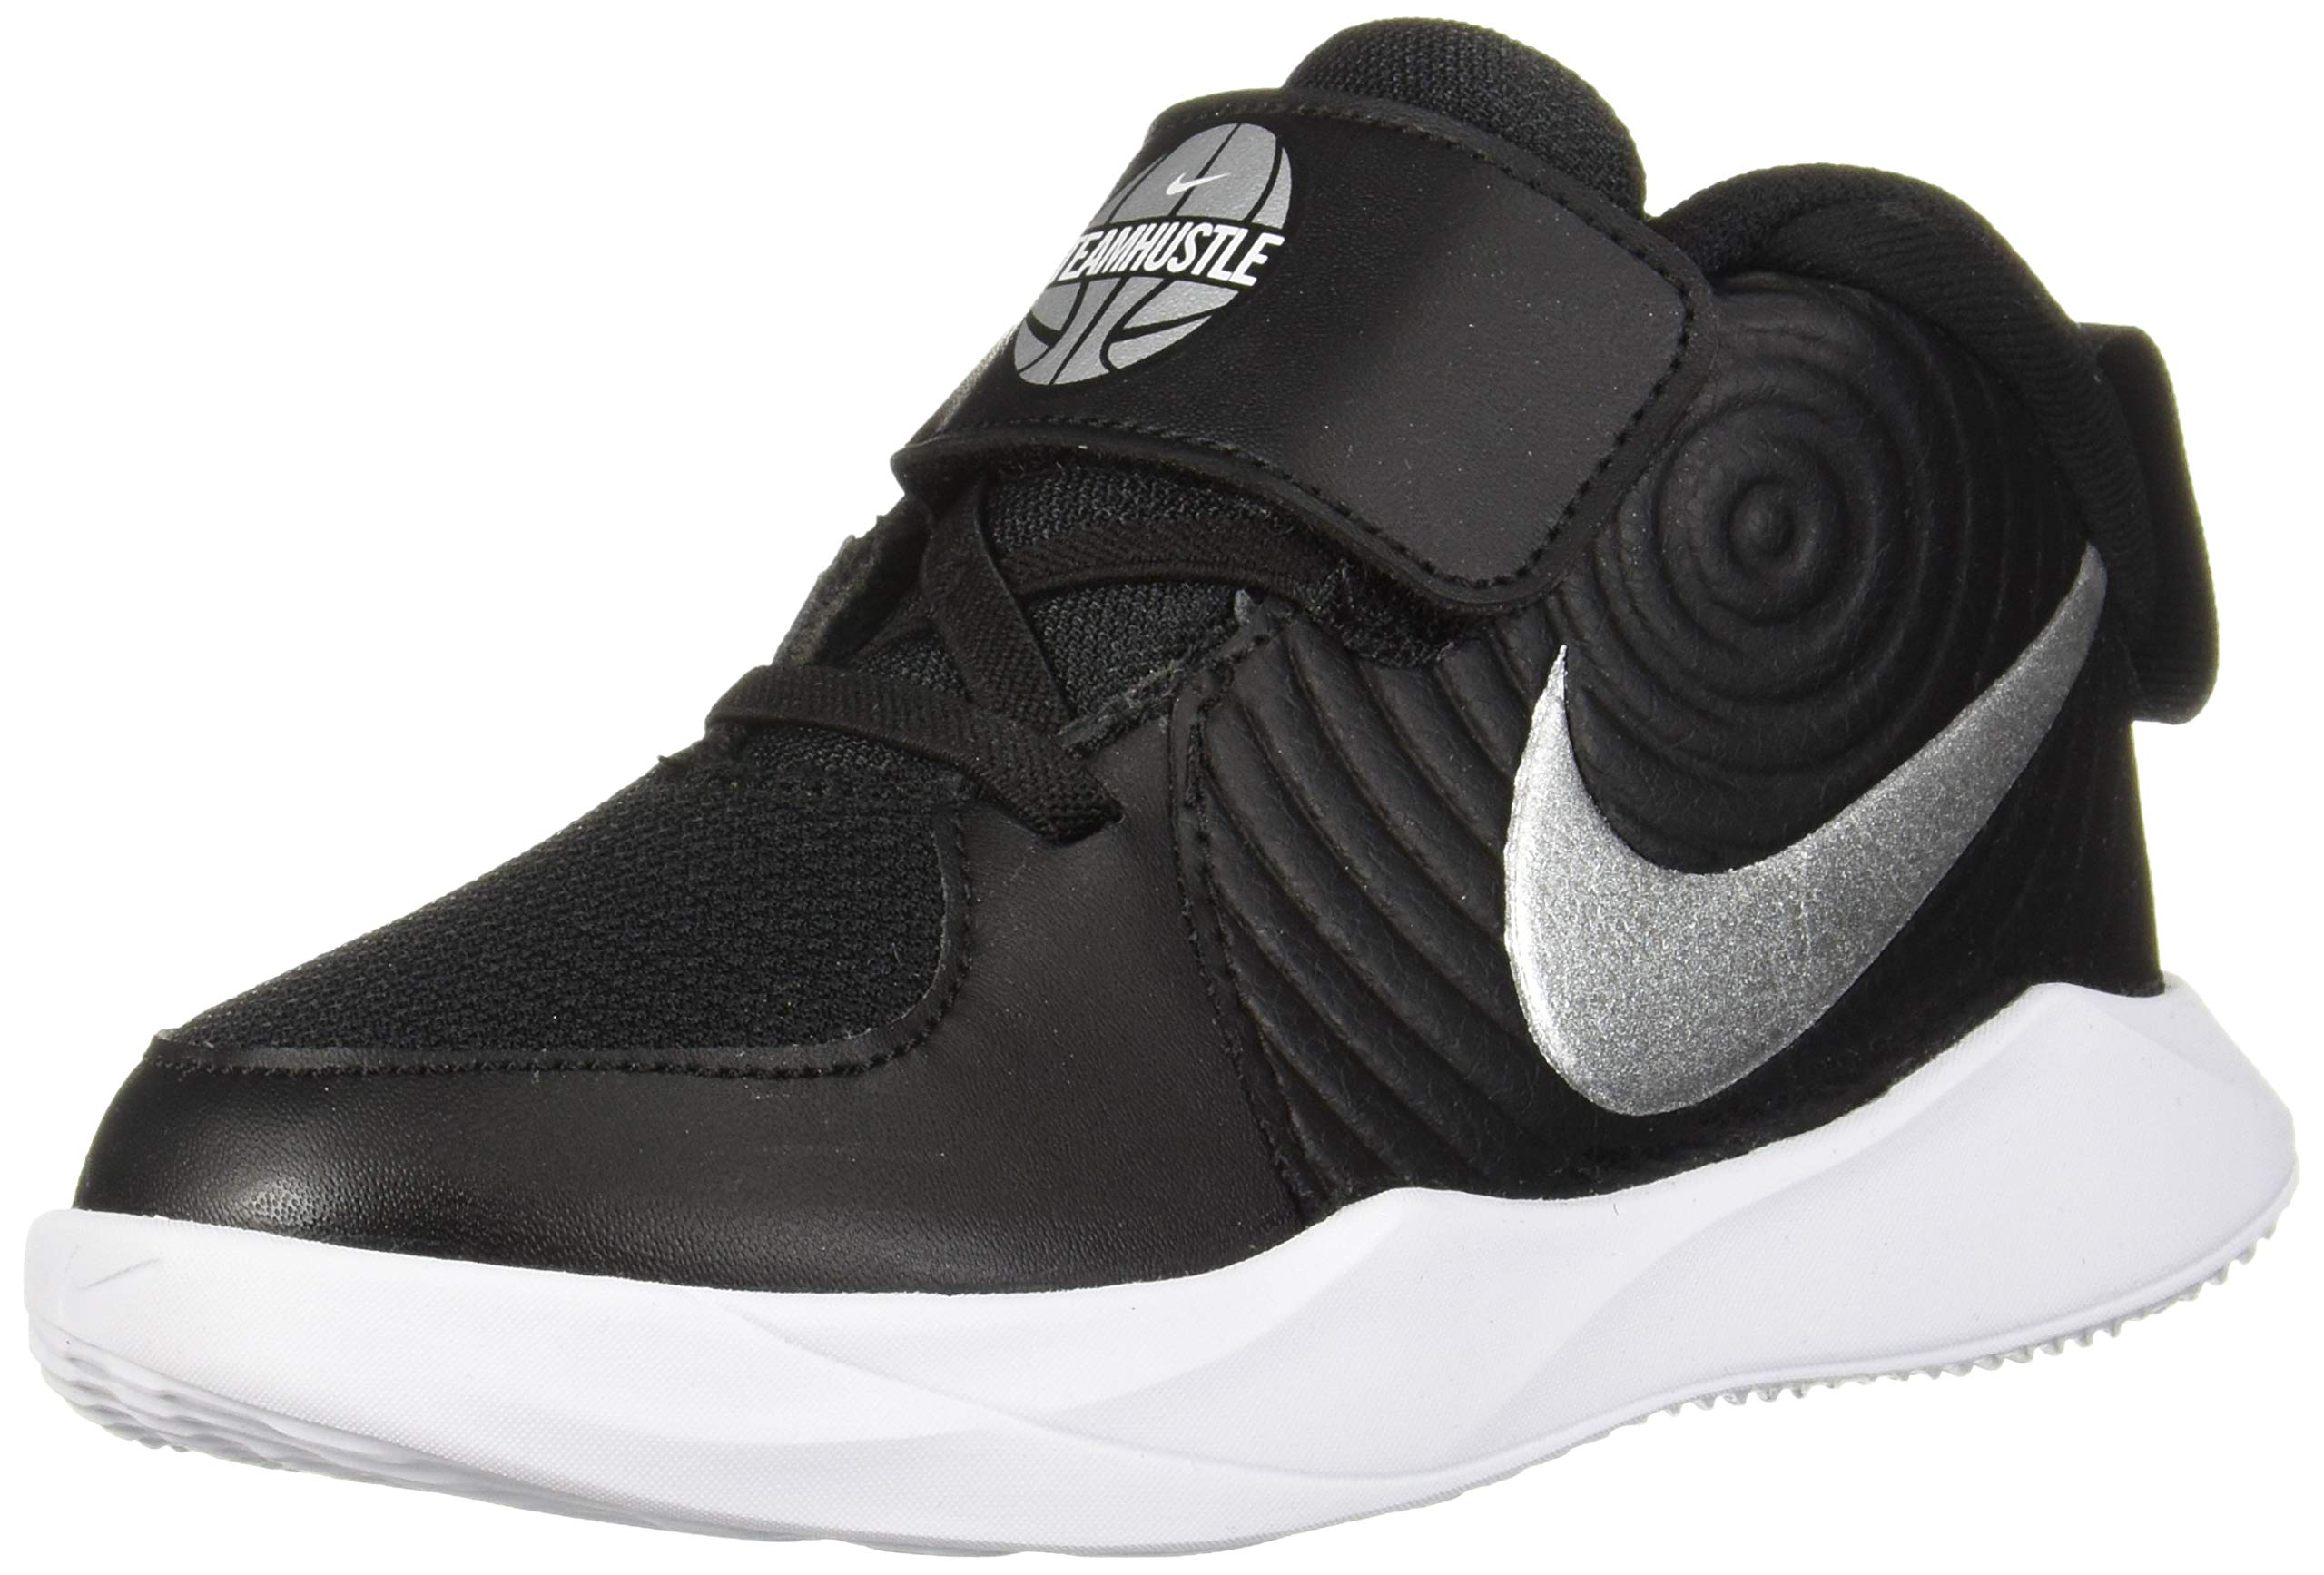 Nike Baby Team Hustle D 9 (TD) Sneaker, Black/Metallic Silver - Wolf Grey, 9C Regular US Toddler